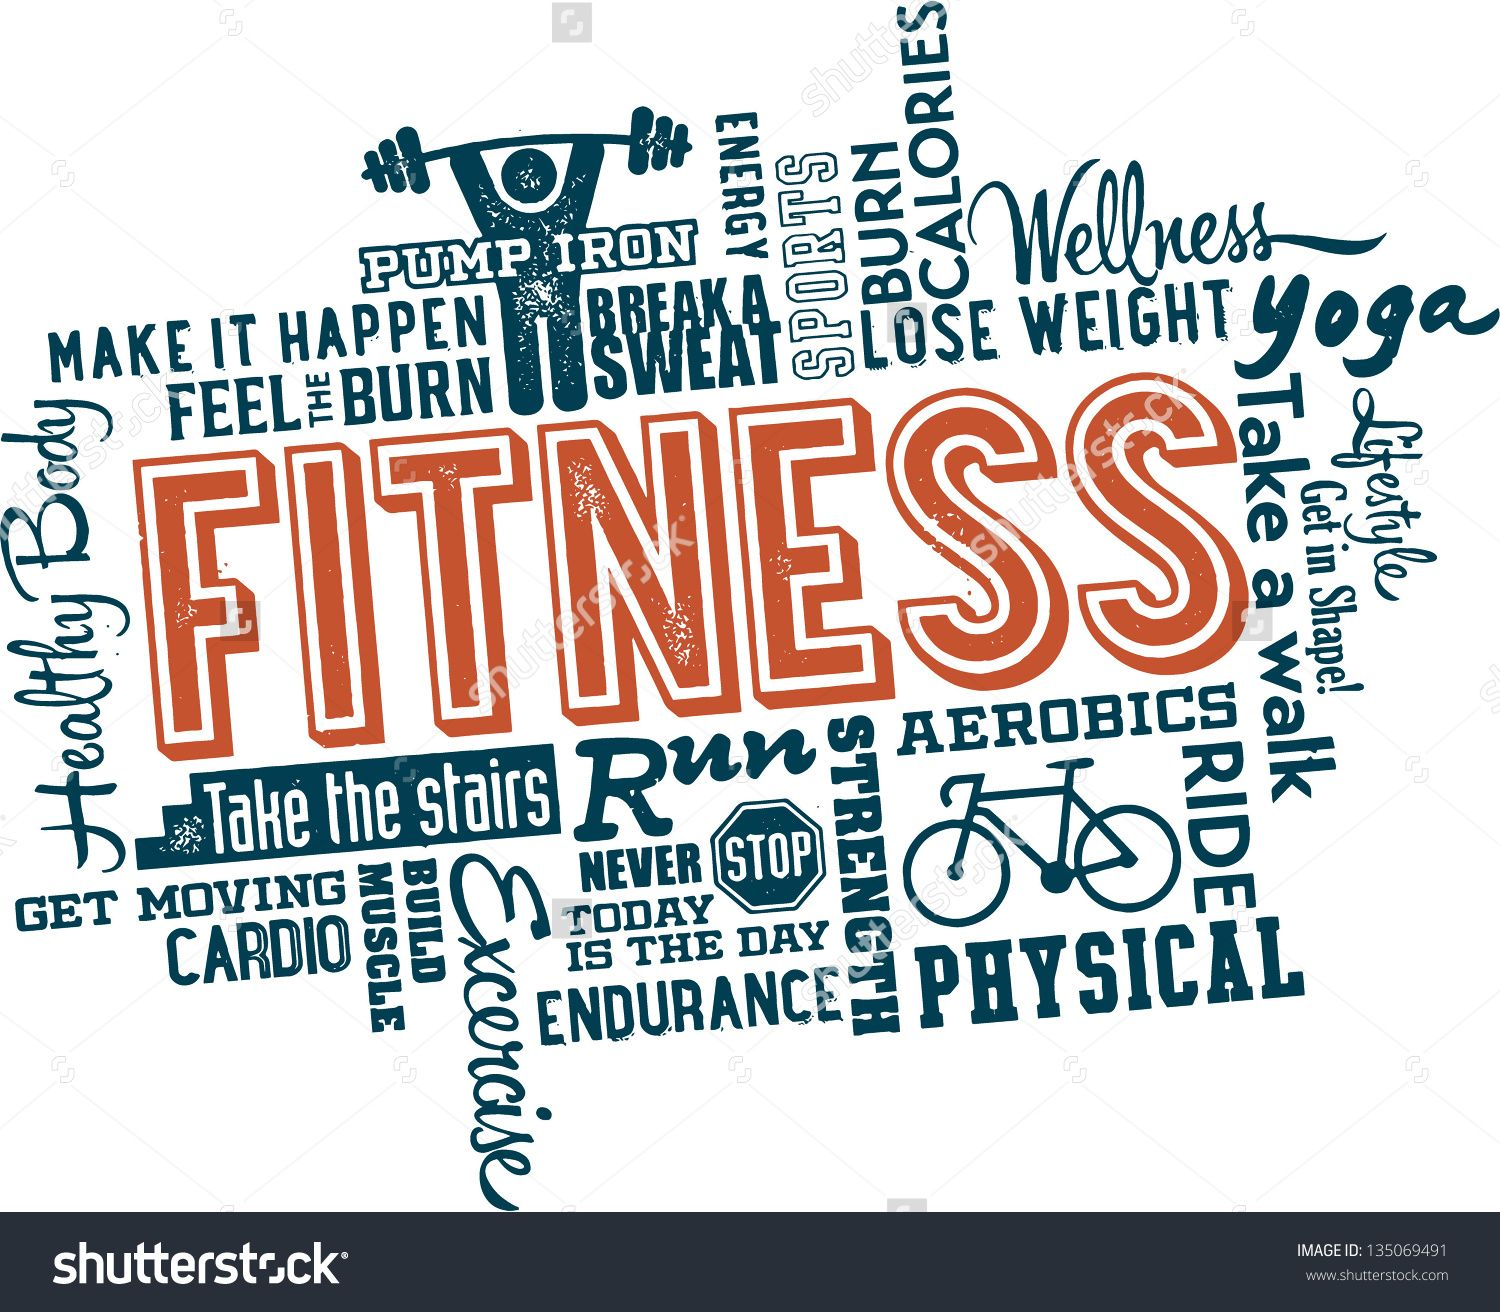 Fitness and healthy exercise word and icon cloud stock vector fitness and healthy exercise word and icon cloud stock vector illustration buycottarizona Choice Image